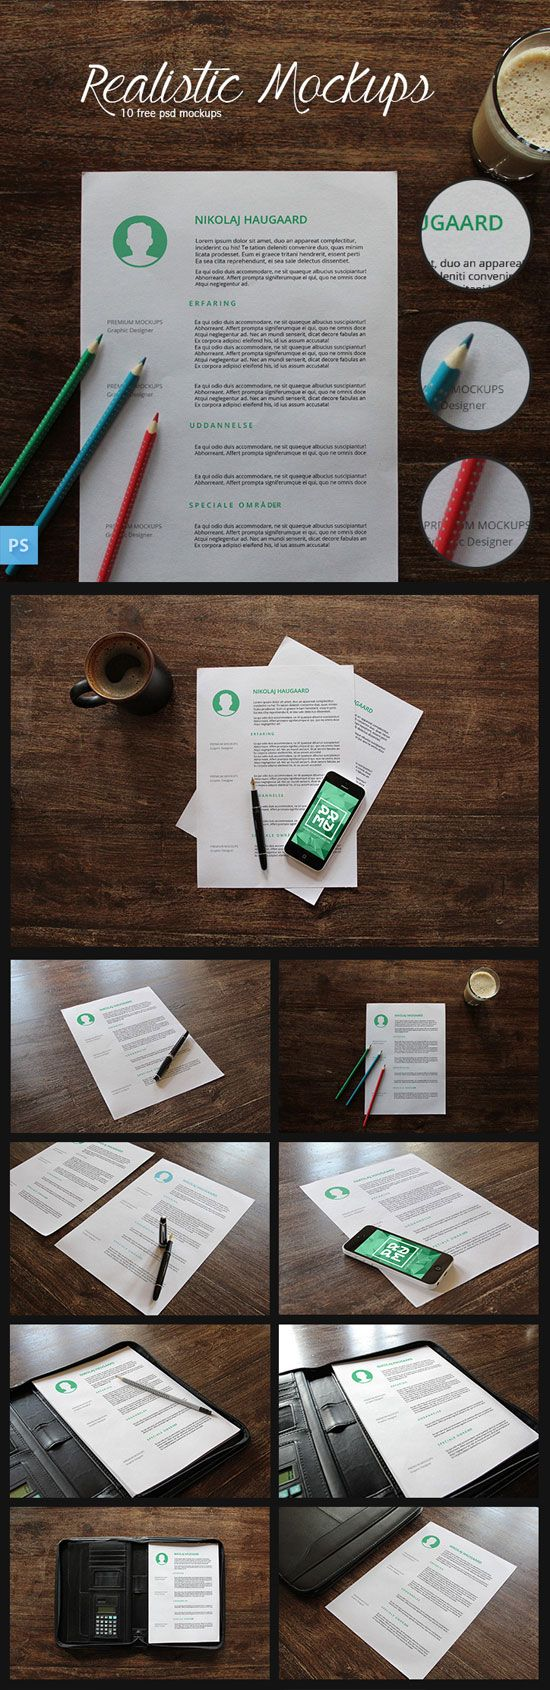 The Ultimate Collection of Free Branding/Identity Mockups #free #mockups